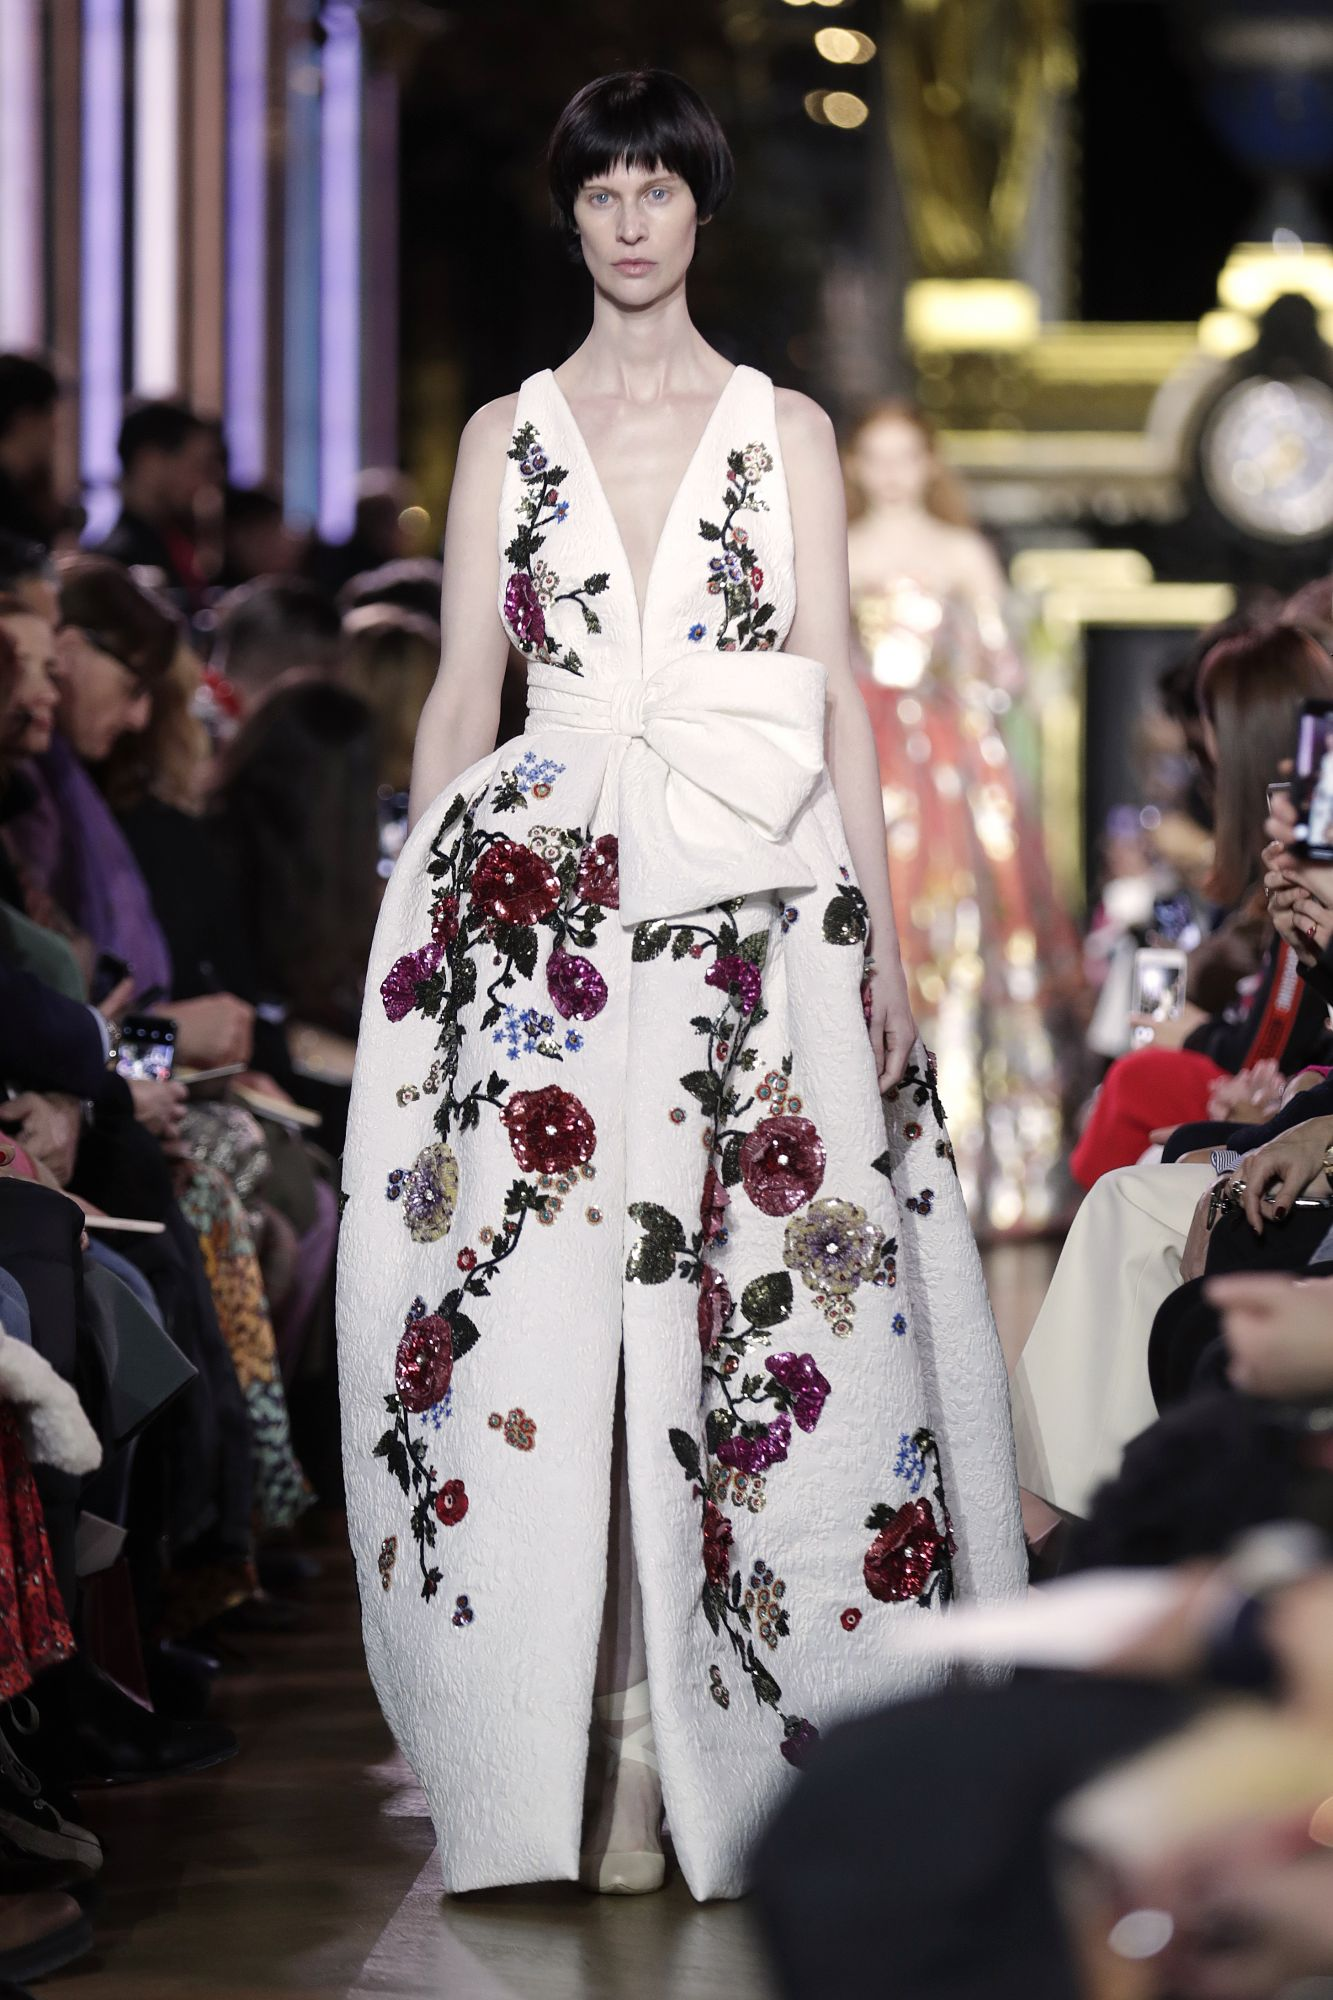 Schiaparelli presented an extremely elegant and feminine collection poetically inspired by astrology, in which floral motifs took pride of place. Paris, January 21, 2019; Image: Courtesy of Thomas Samson/AFP